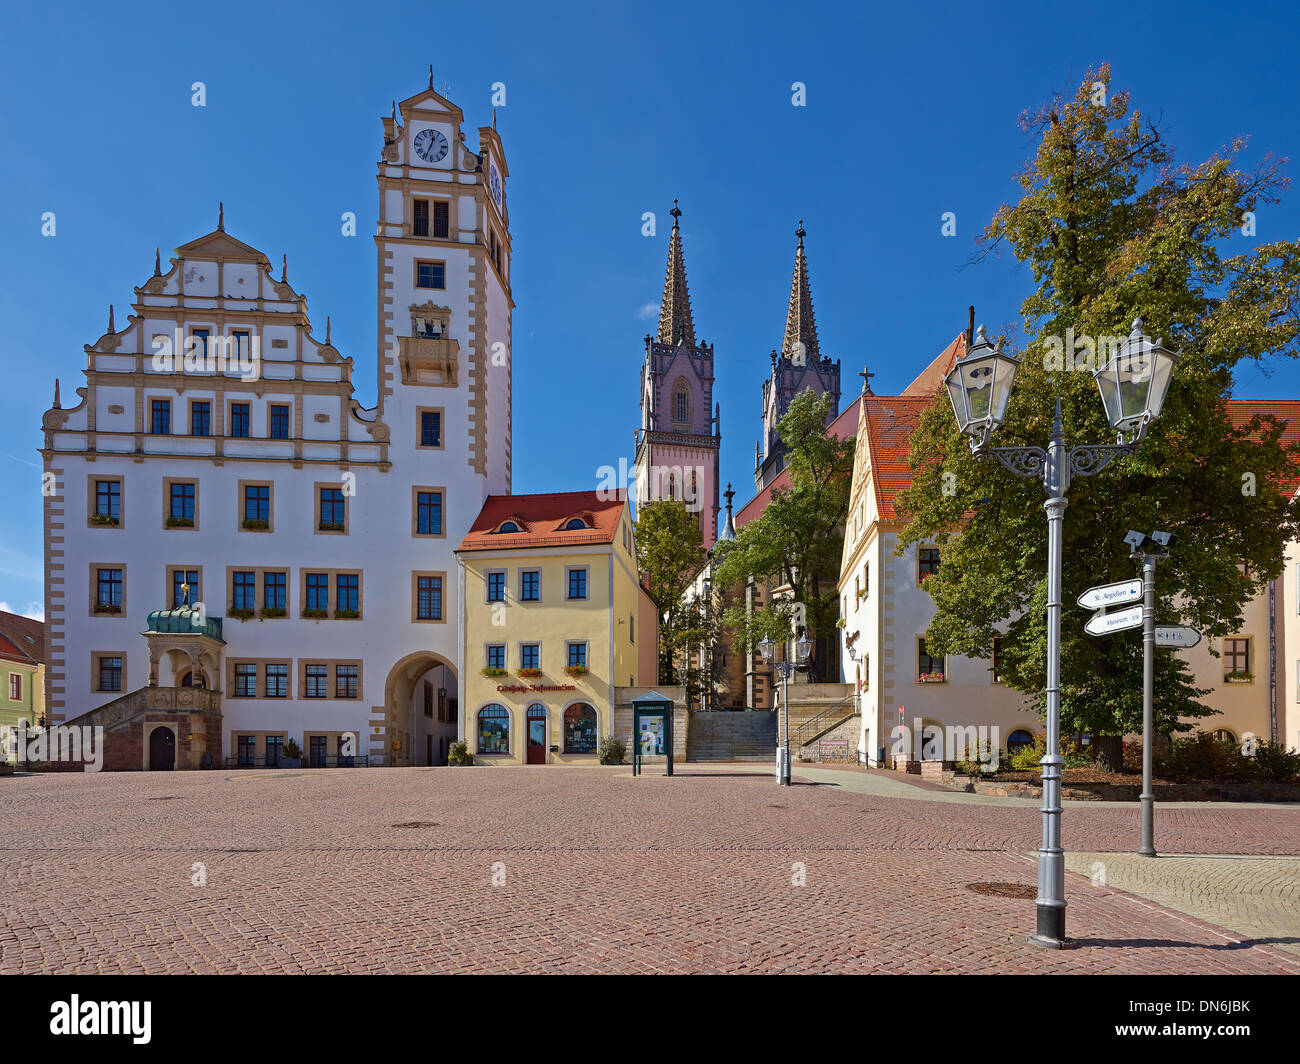 Neumarkt with town hall and St. Aegedien church in Oschatz, Nordsachsen district, Saxony, Germany Stock Photo